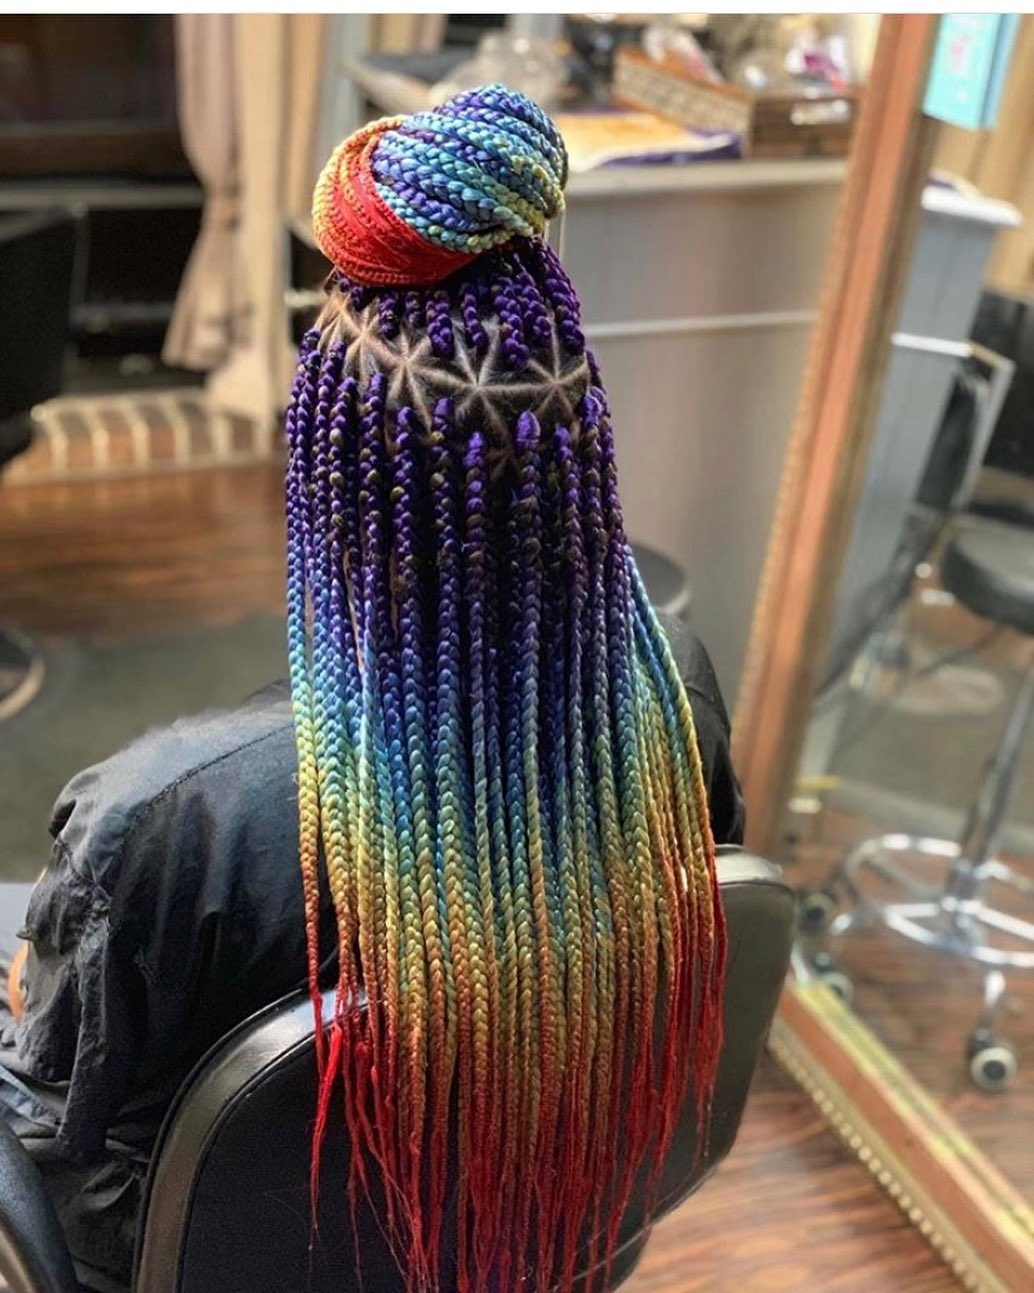 Top 10 Box Braids Style To Try In The New Year 2020